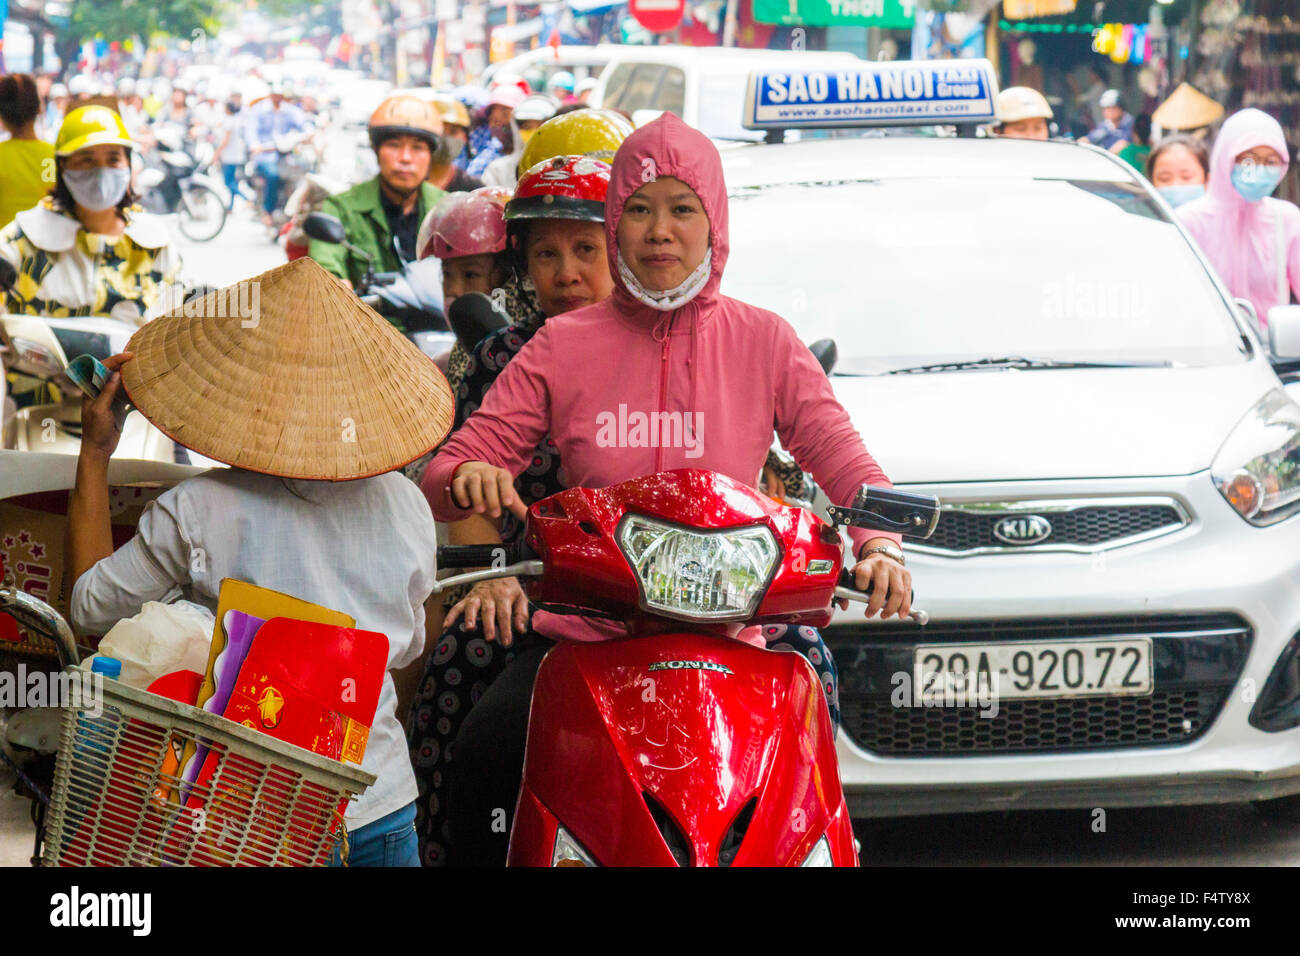 traffic congestion bikes and cars in Hanoi old quarter, city centre,Vietnam Stock Photo